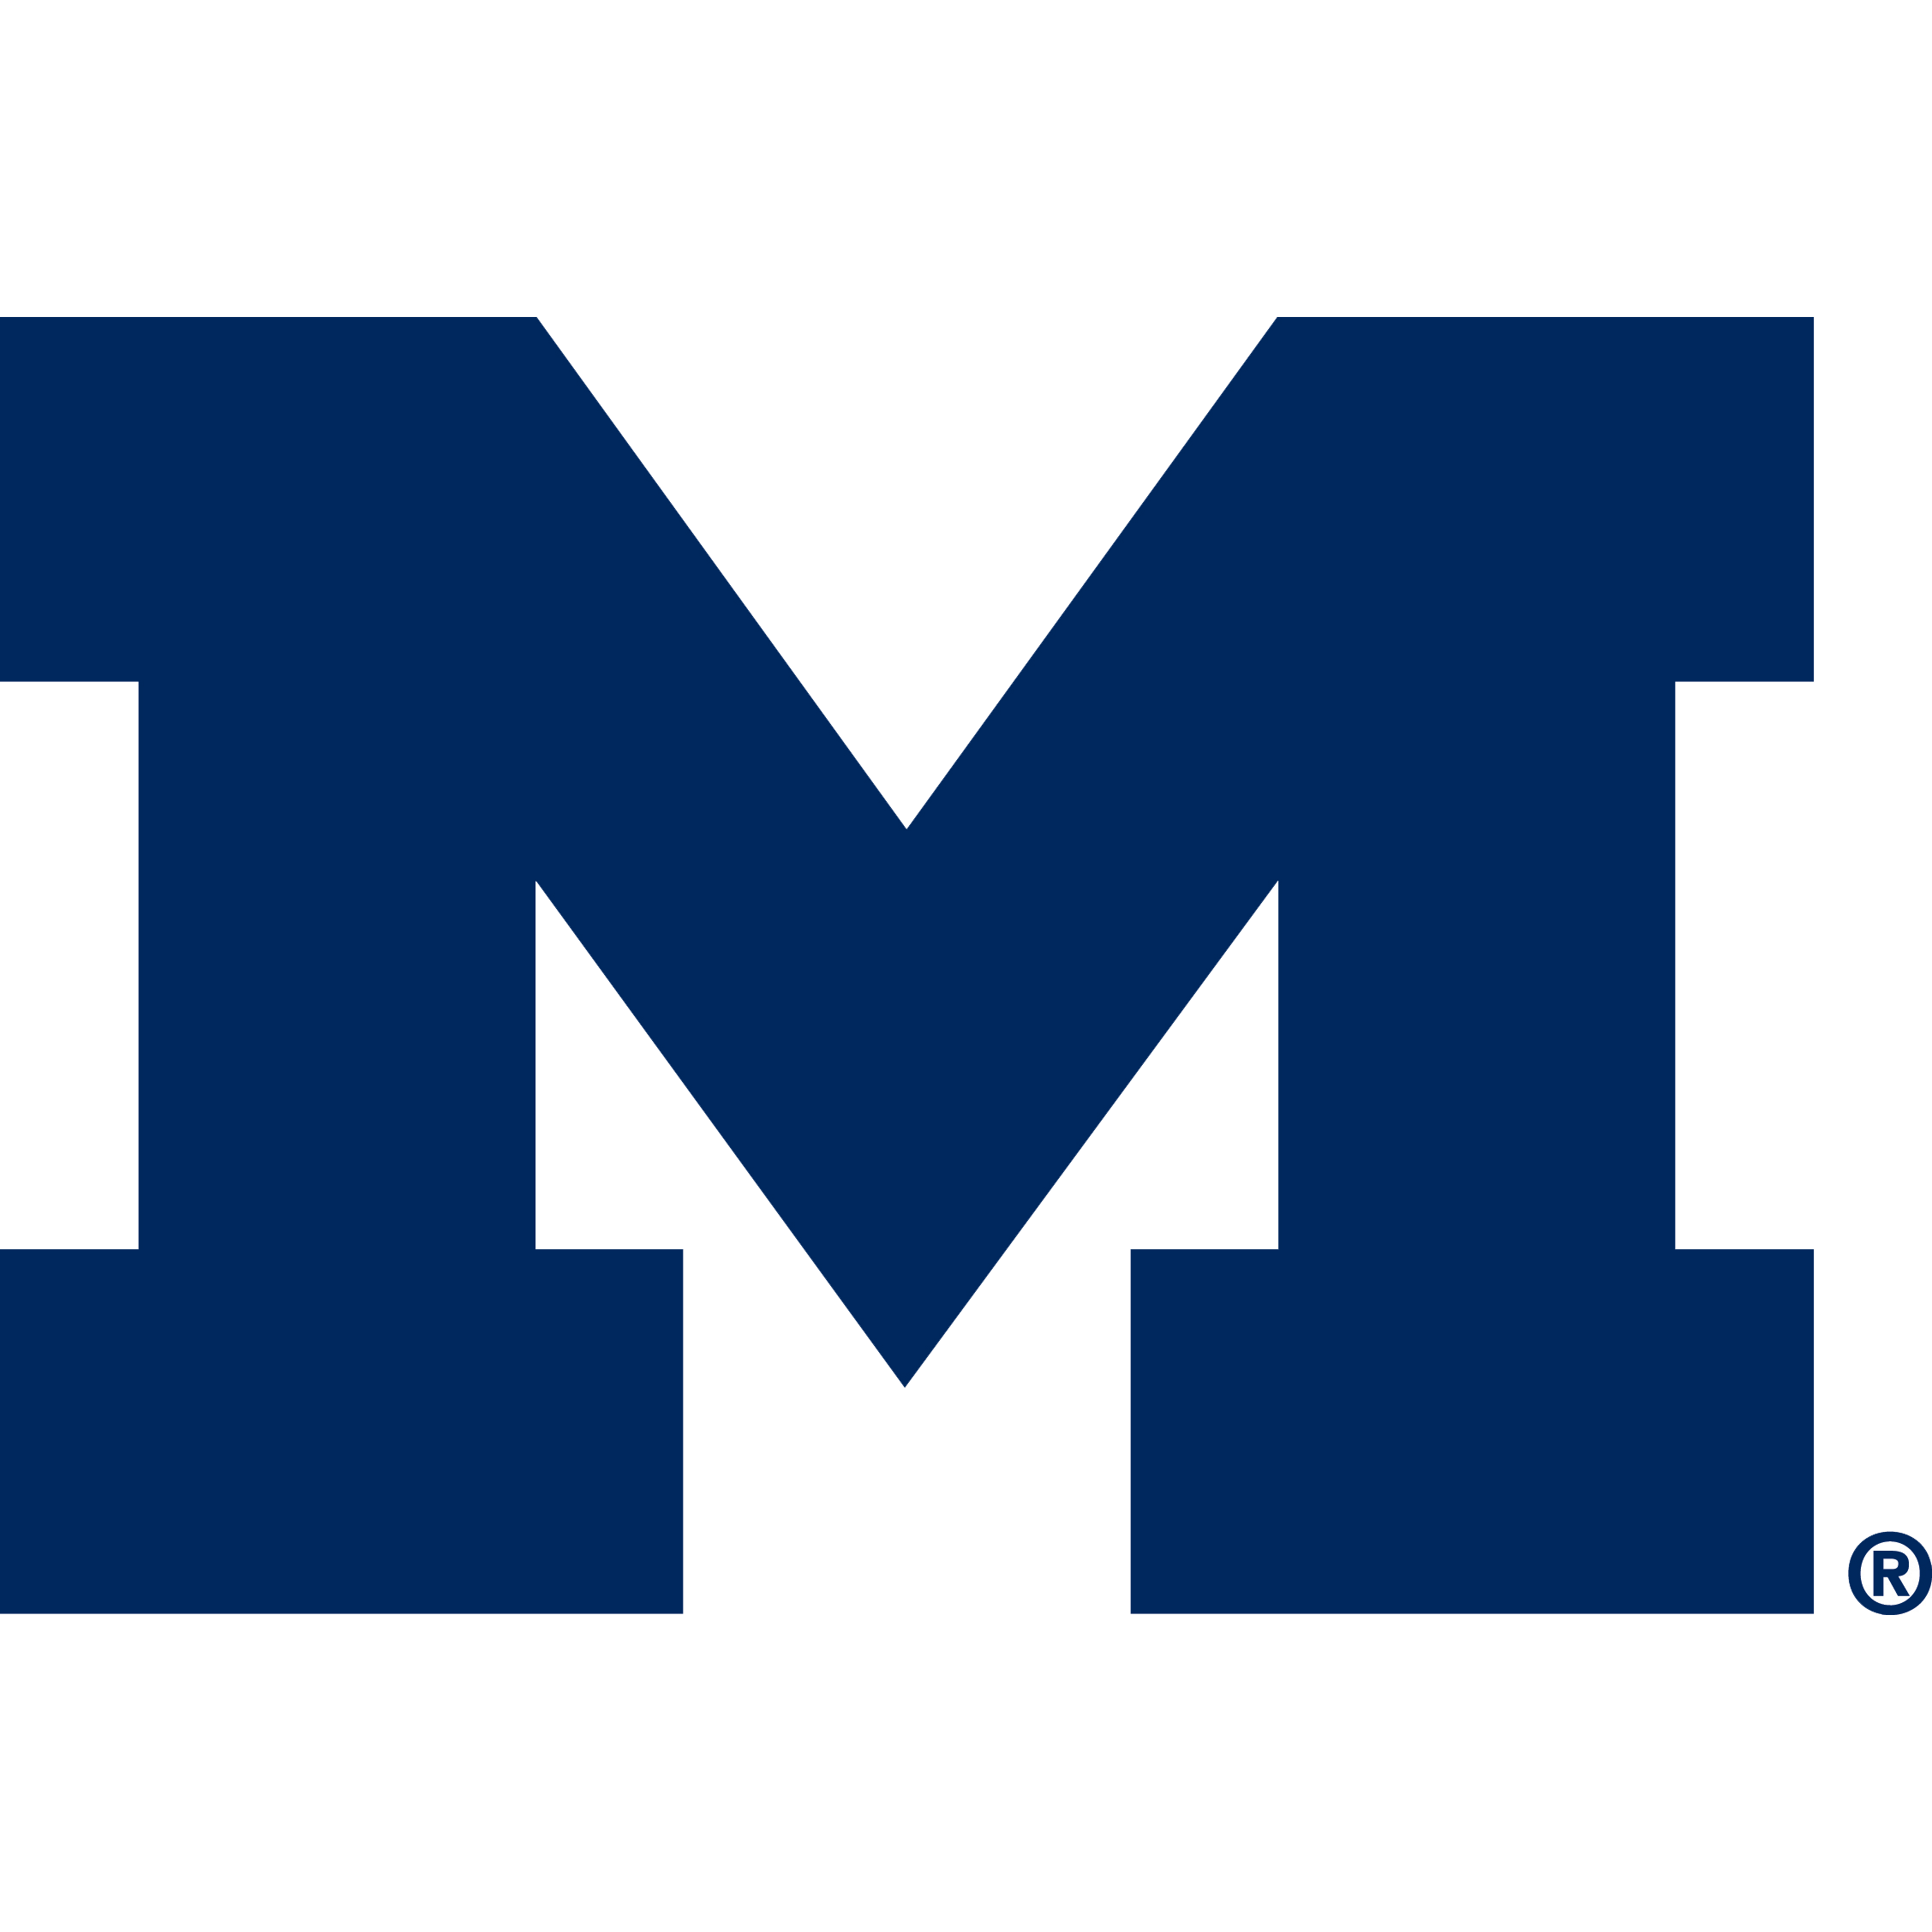 Michigan logo png. Wolverines schedule stats latest